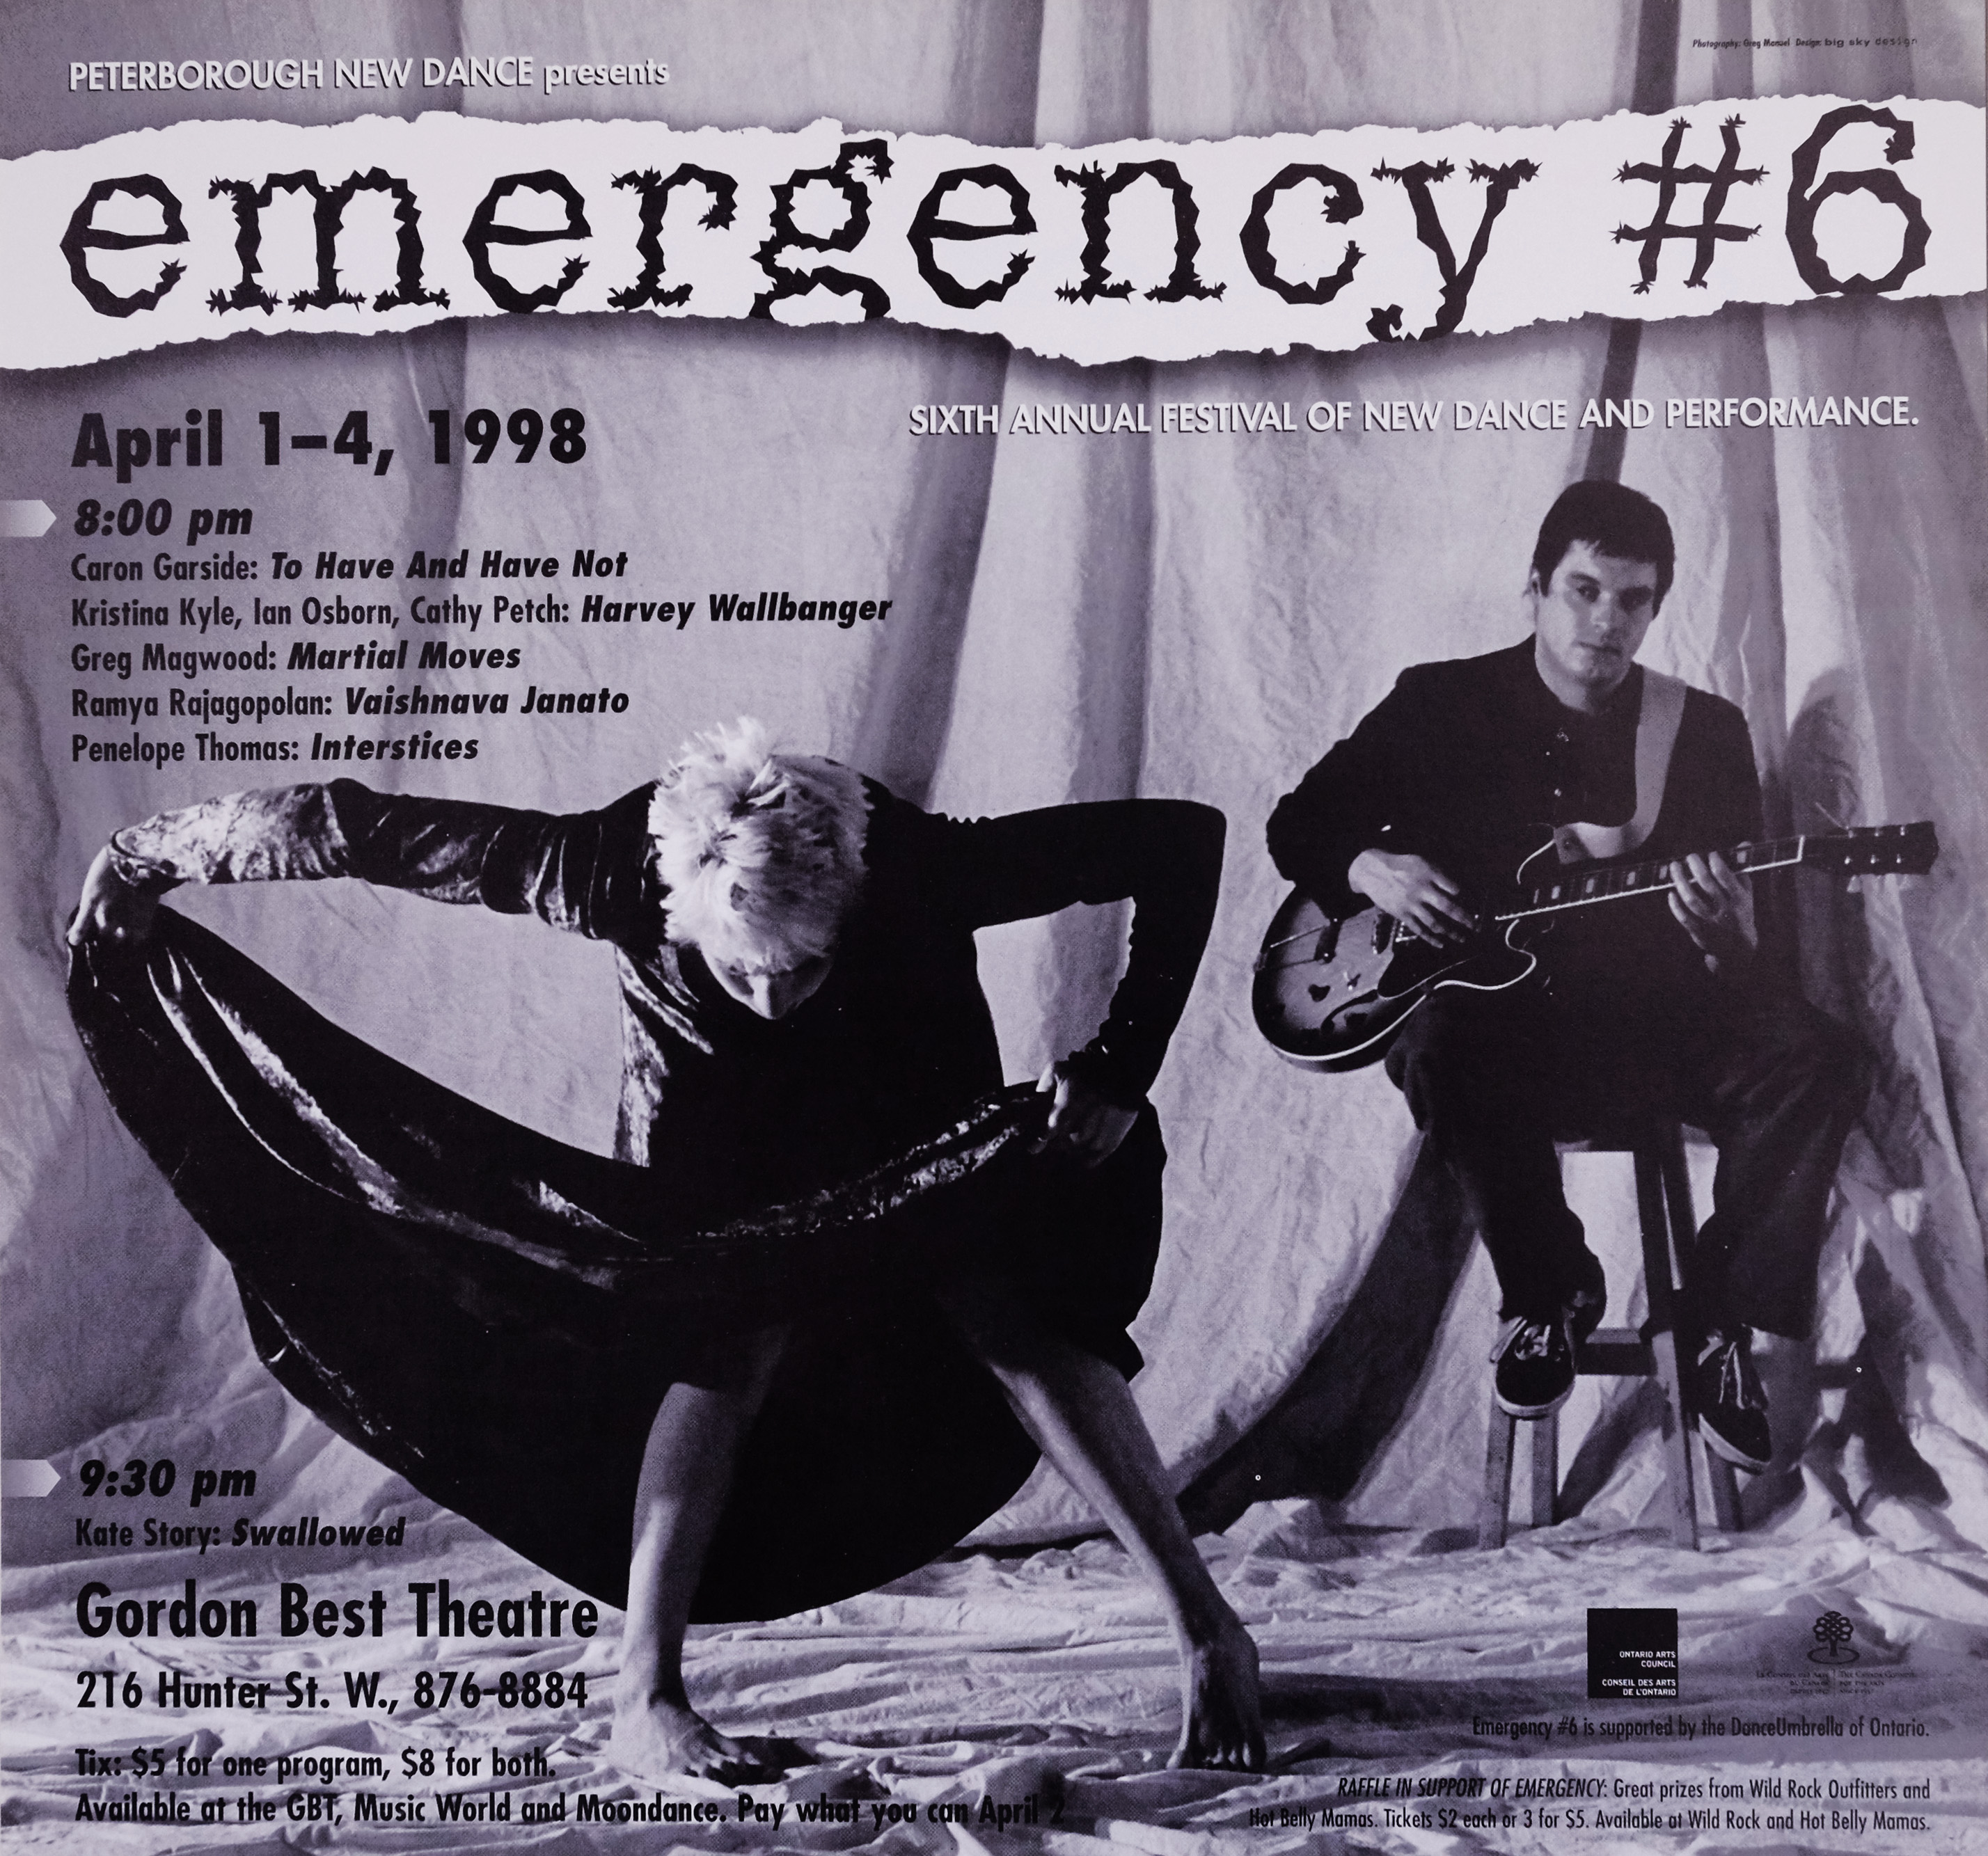 Emergency #6 Poster for Emergency 6 showing Kate Story and Patrick Walsh in the photo.